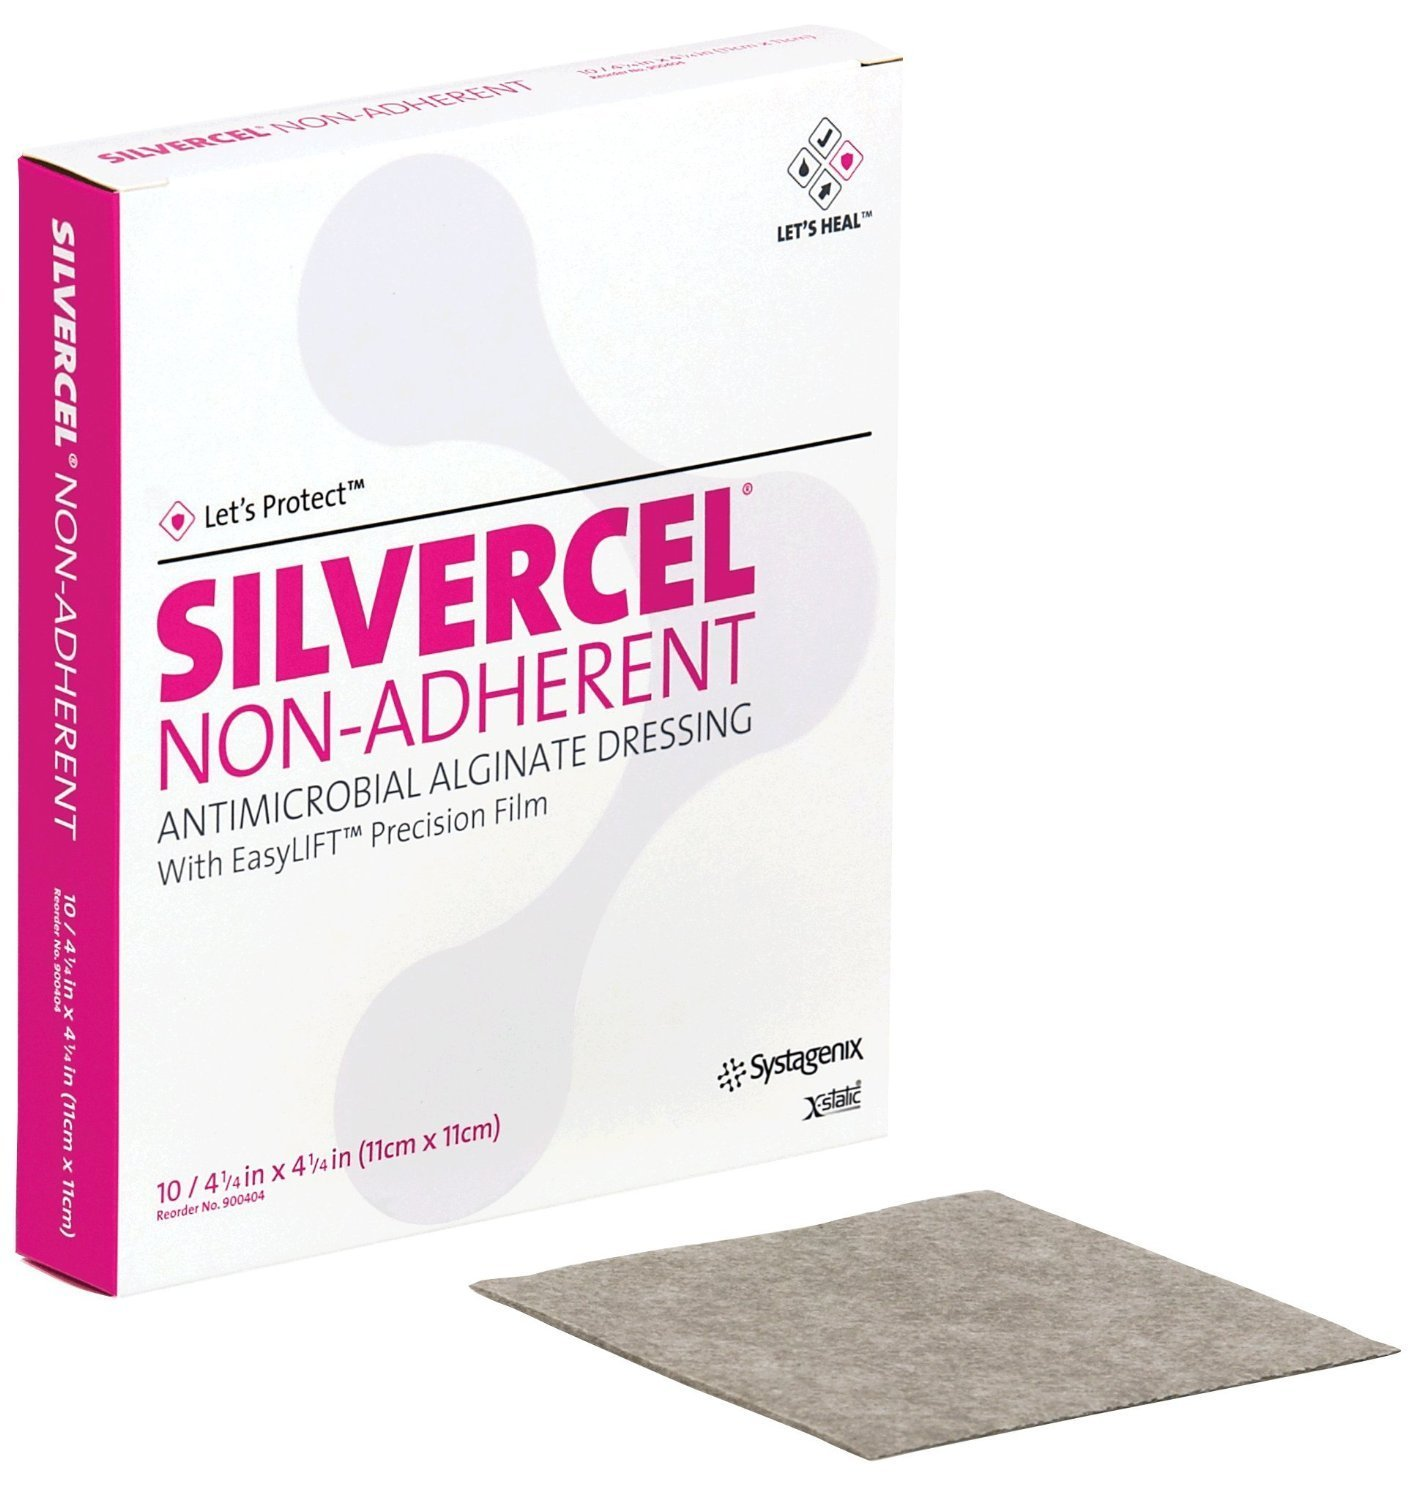 53900404 - Silvercel Non-Adherent Antimicrobial Alginate Dressing 4-1/4 x 4-1/4